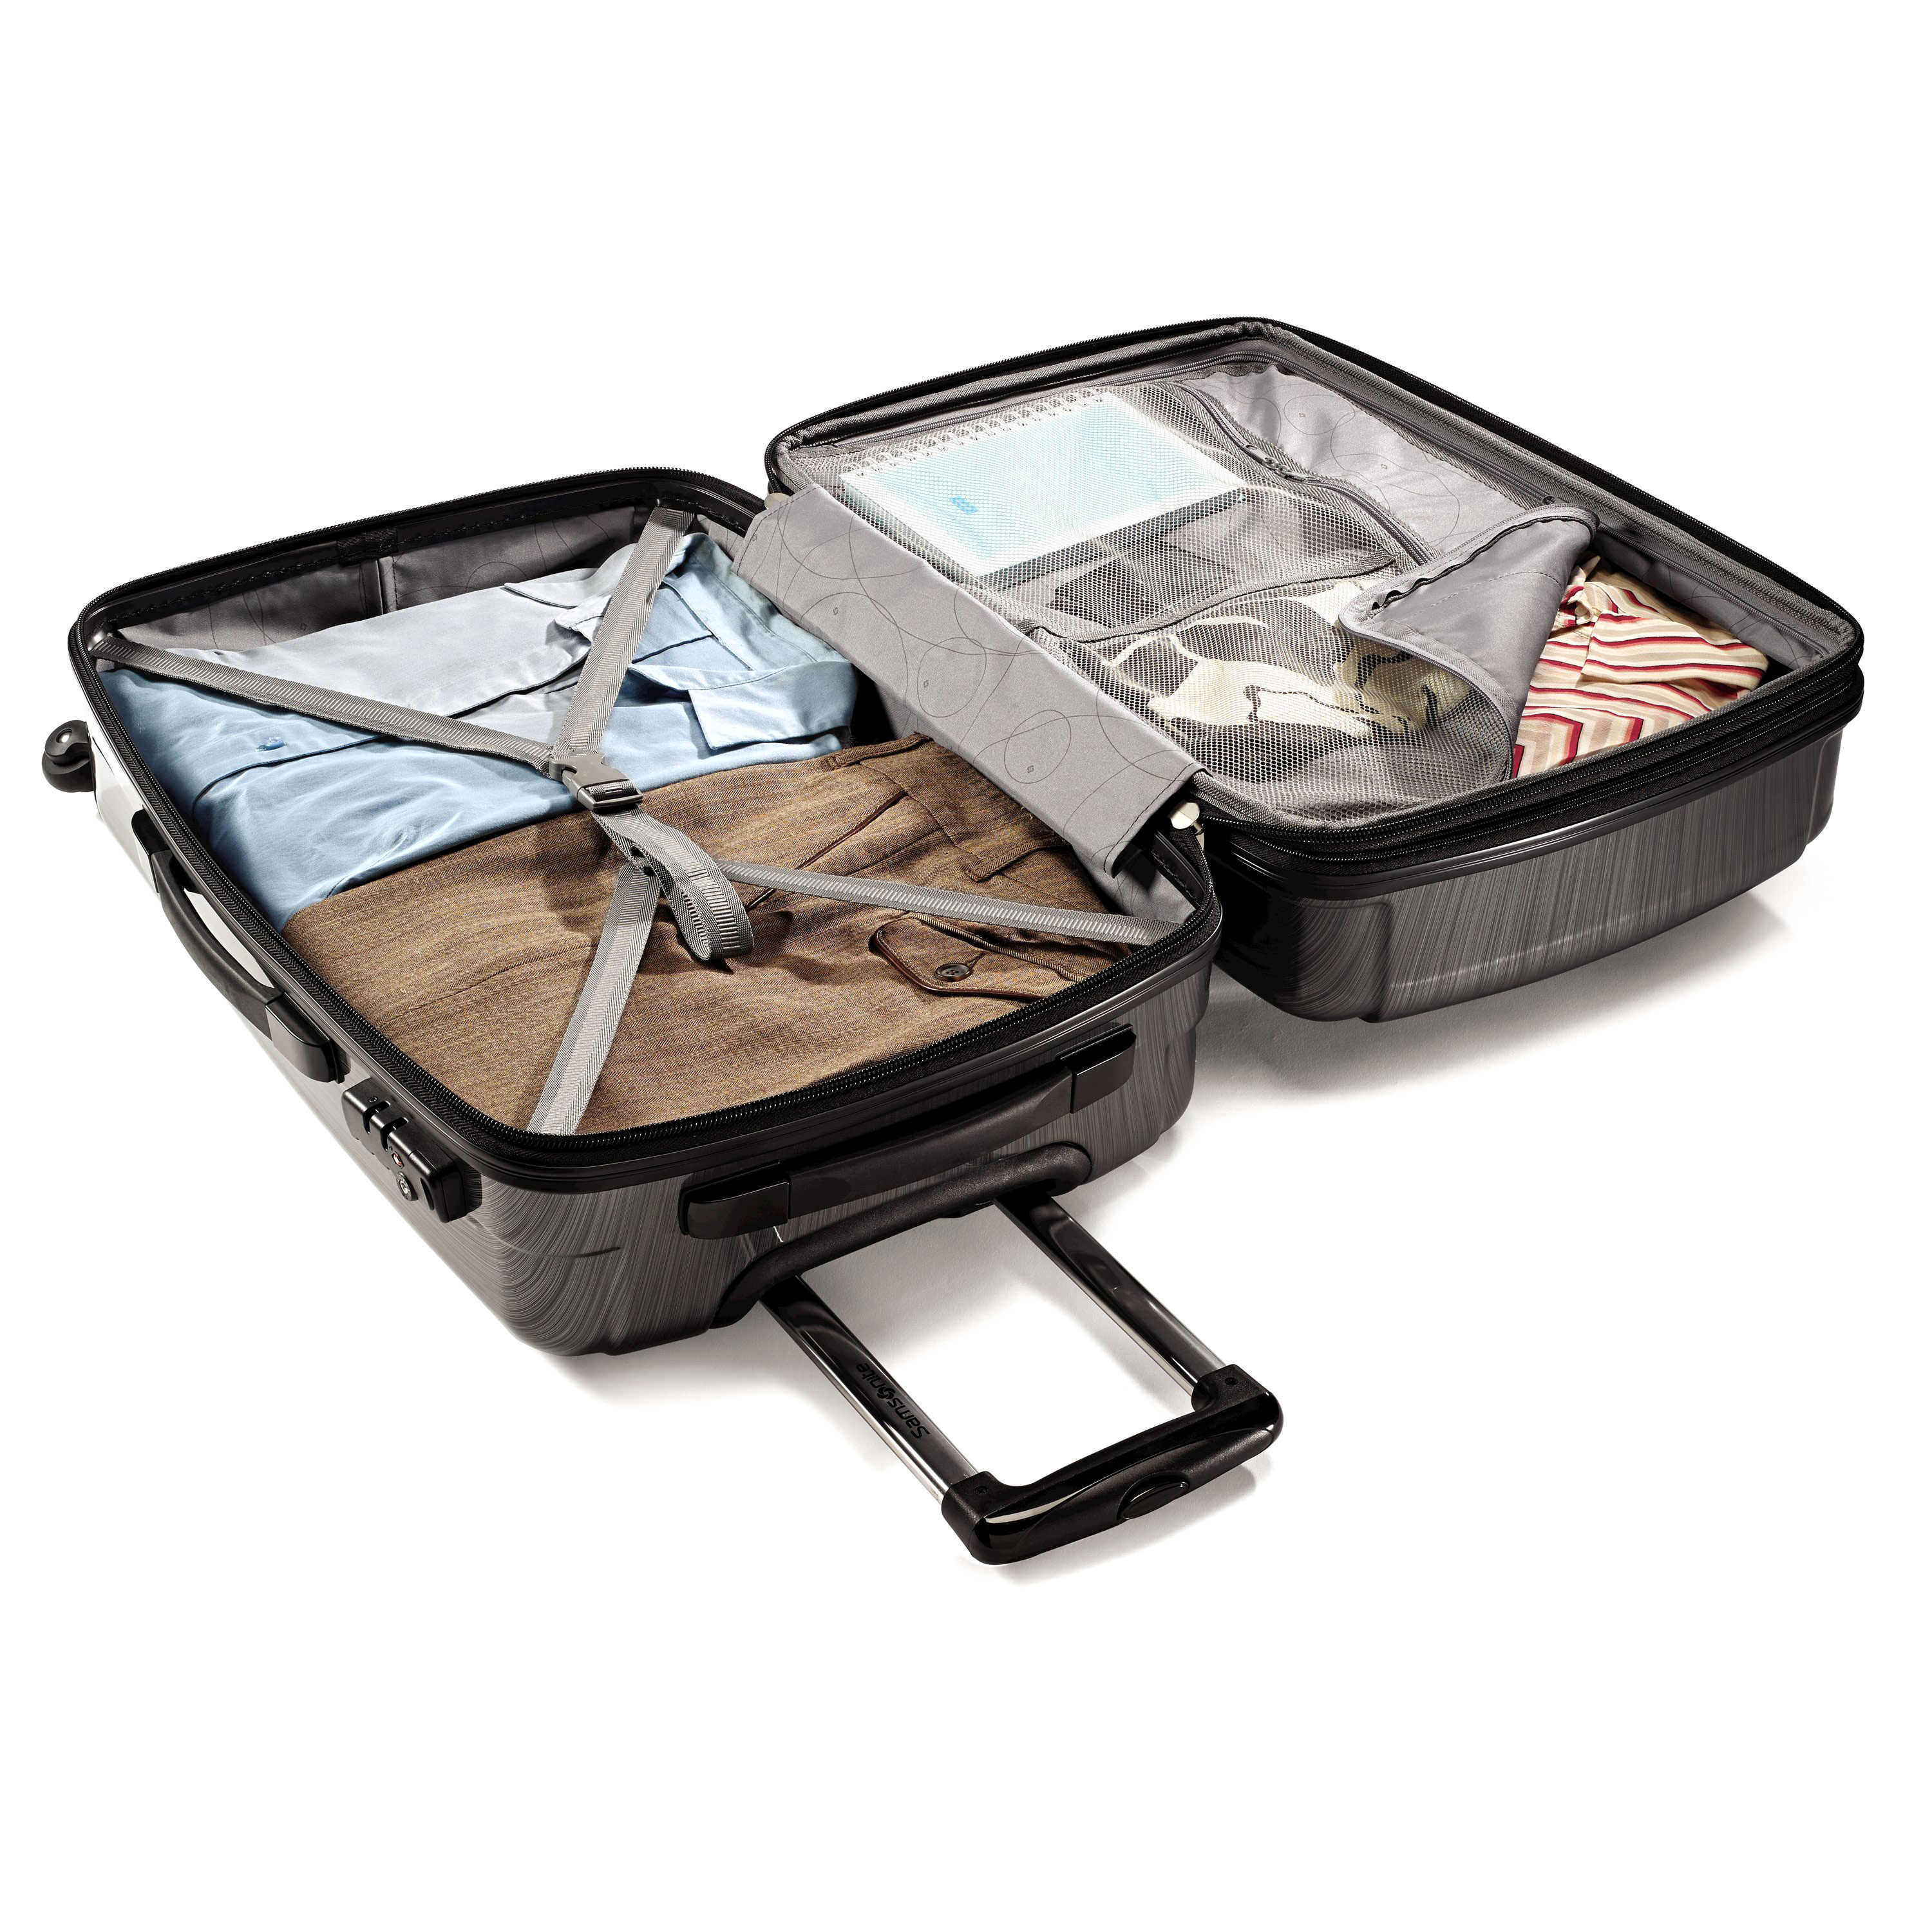 Samsonite-Winfield-2-Fashion-Spinner-Luggage thumbnail 10